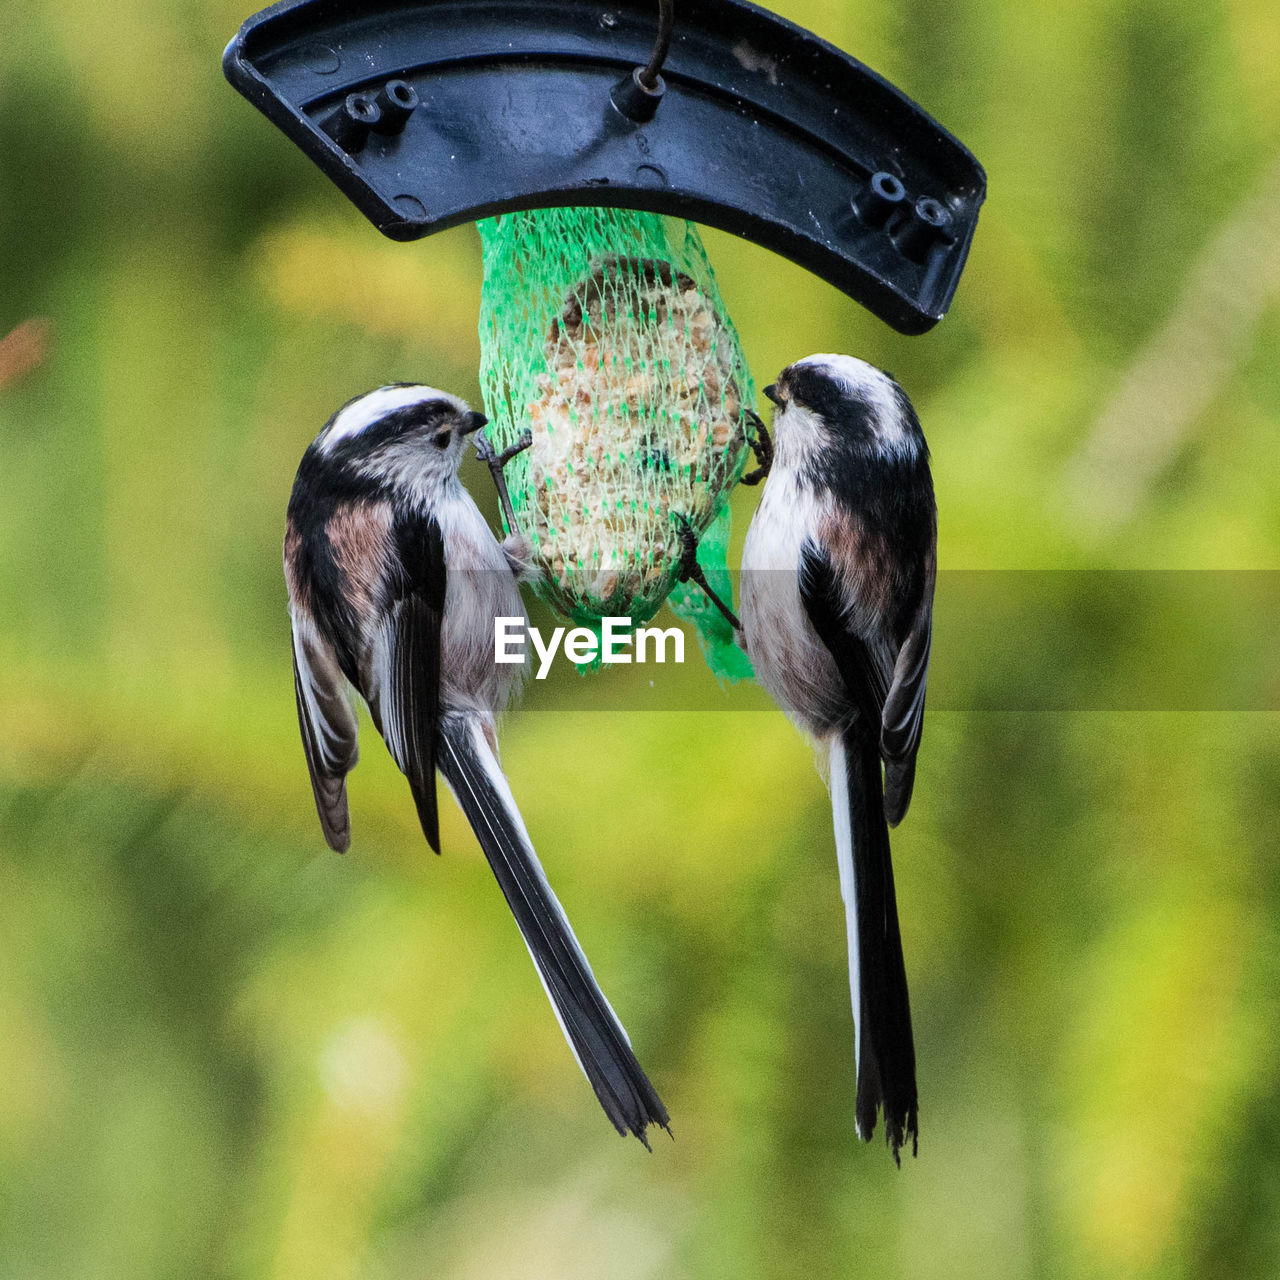 bird, focus on foreground, bird feeder, animal themes, animal wildlife, vertebrate, animal, animals in the wild, group of animals, close-up, day, two animals, no people, nature, outdoors, flying, tree, great tit